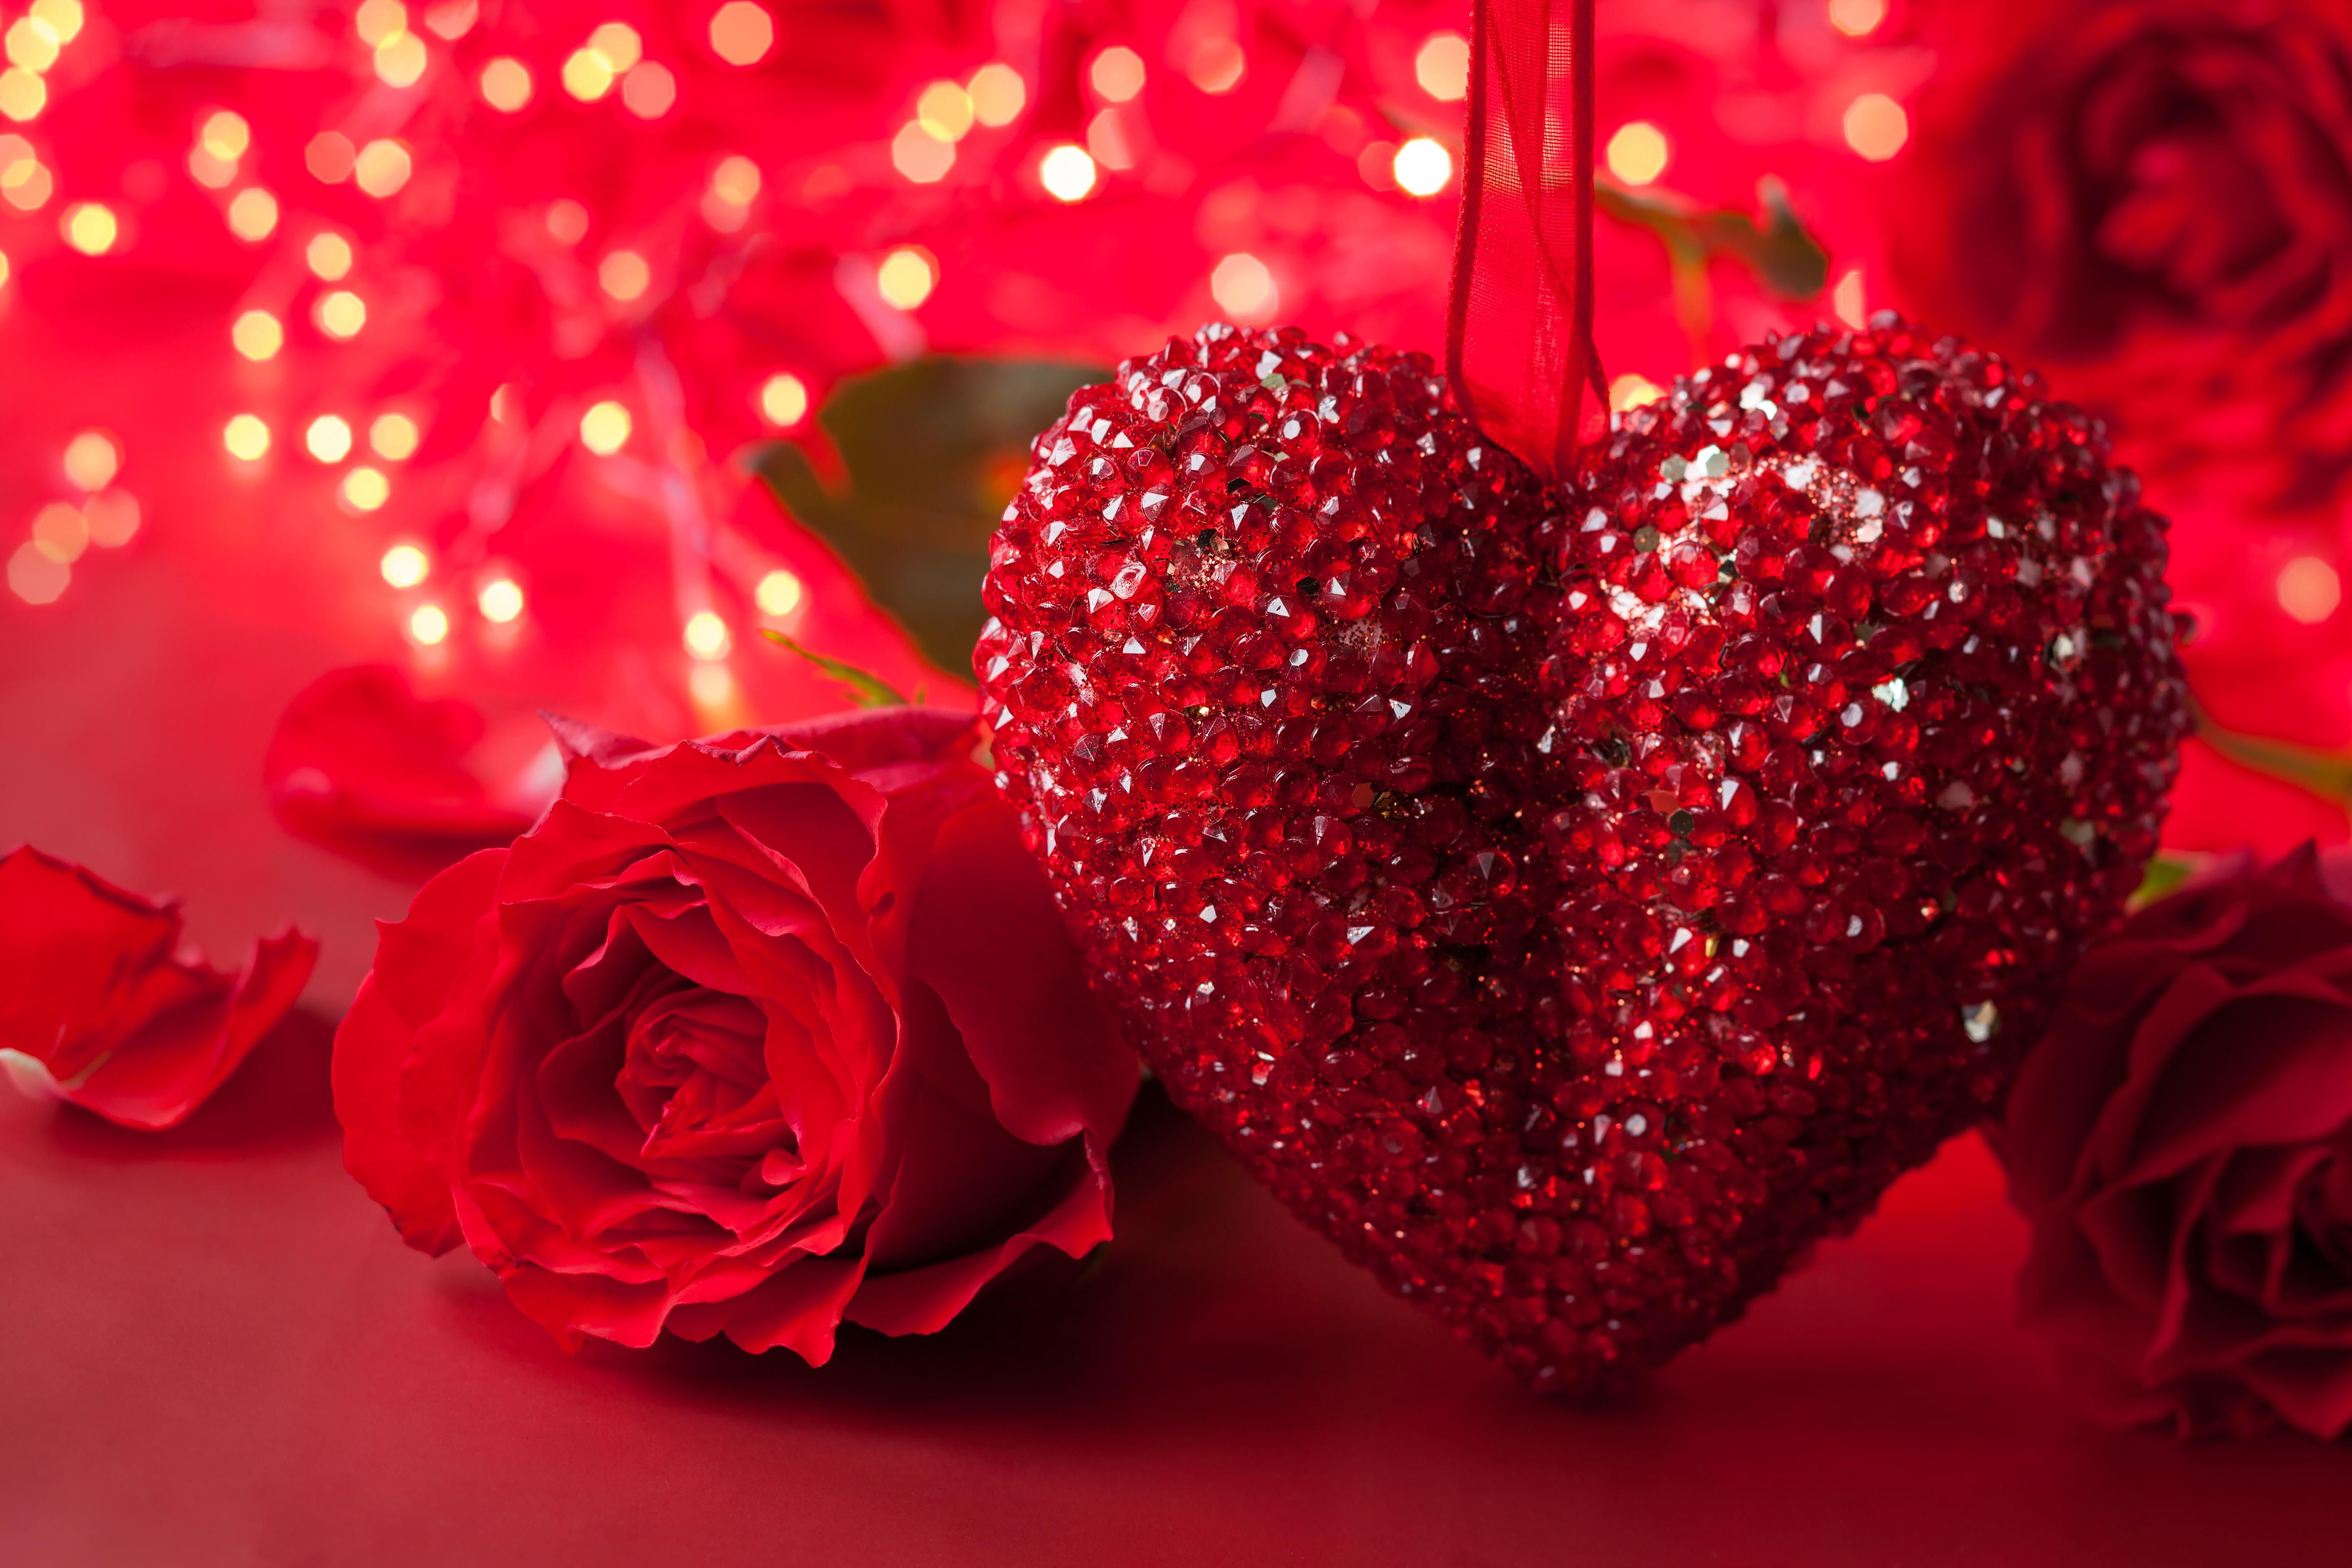 Beautiful cute red heart girl love rose hd wallpaper love happy rose day 2017 wishes quotes sms hd wallpapers collection for the valentines week 2017 with the special rose day greetings sms wishes pictures in hd dhlflorist Image collections